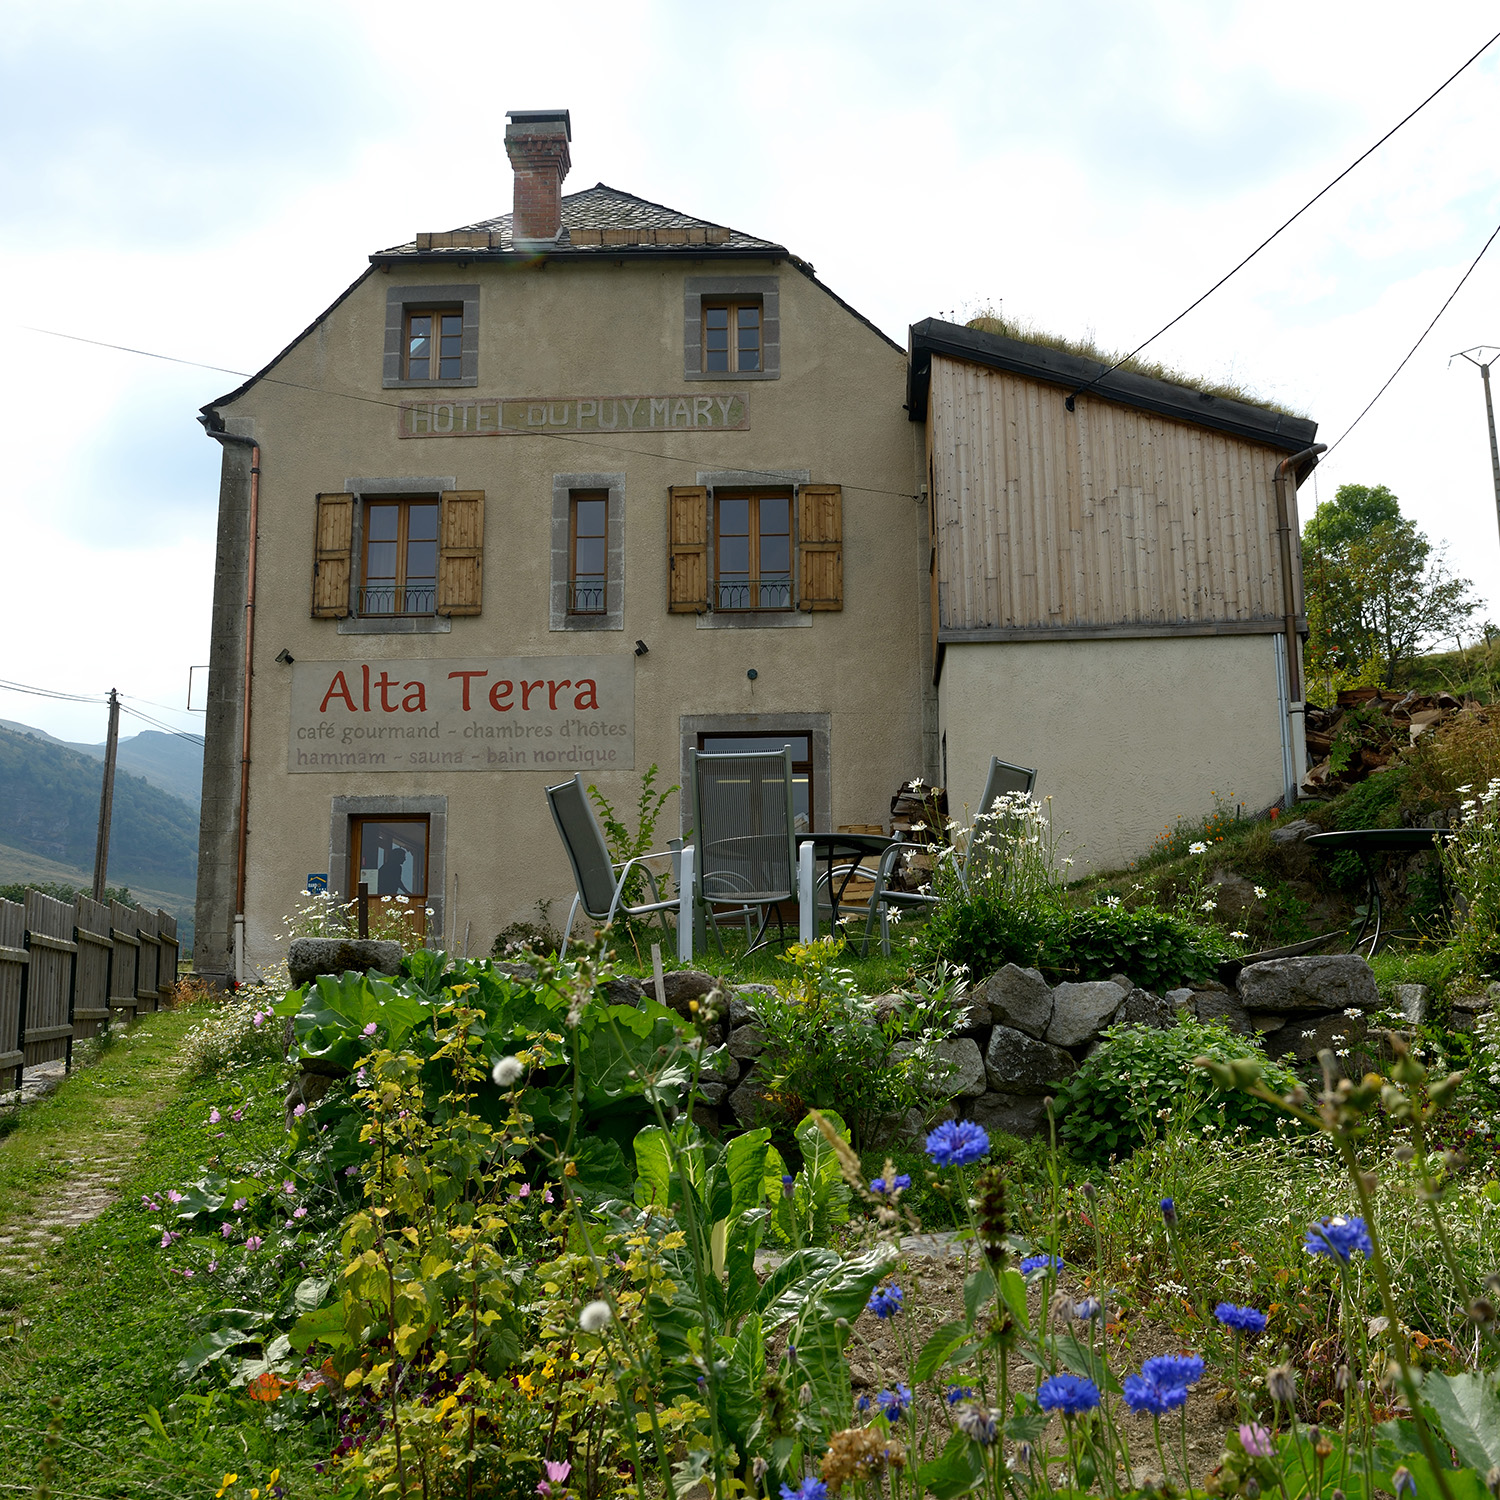 Welcome to Alta Terra, a Café and Bed & Breakfast in Auvergne. Photo ©Pierrick Bourgault